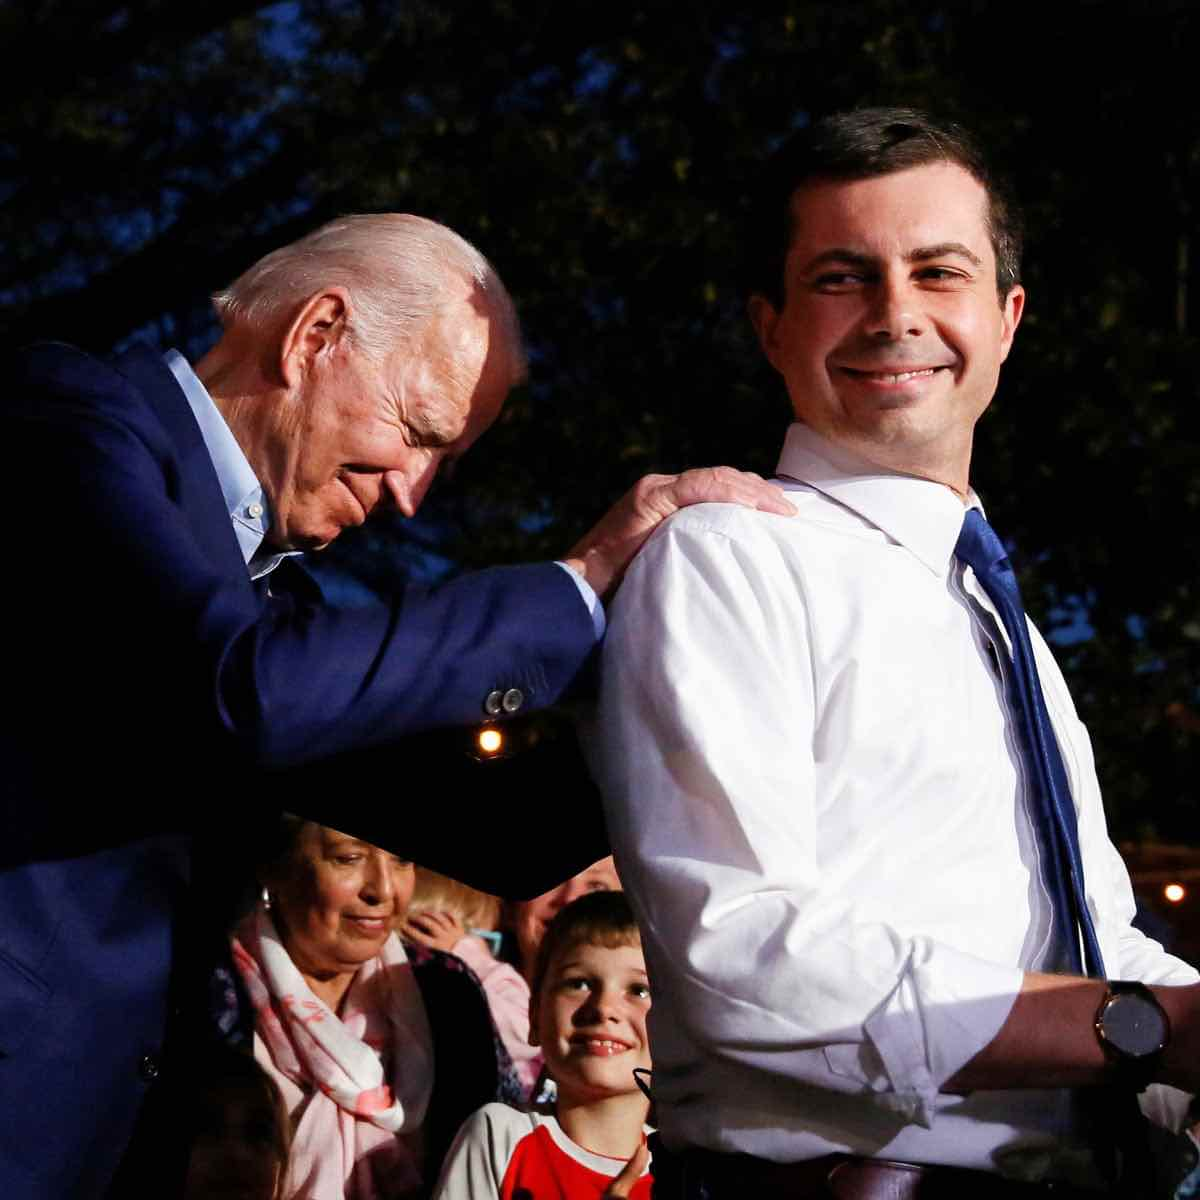 A few people were befuddled by Pete Buttigieg being appointed as Joe Biden's Secretary of Transportation. The internet brought on the memes.